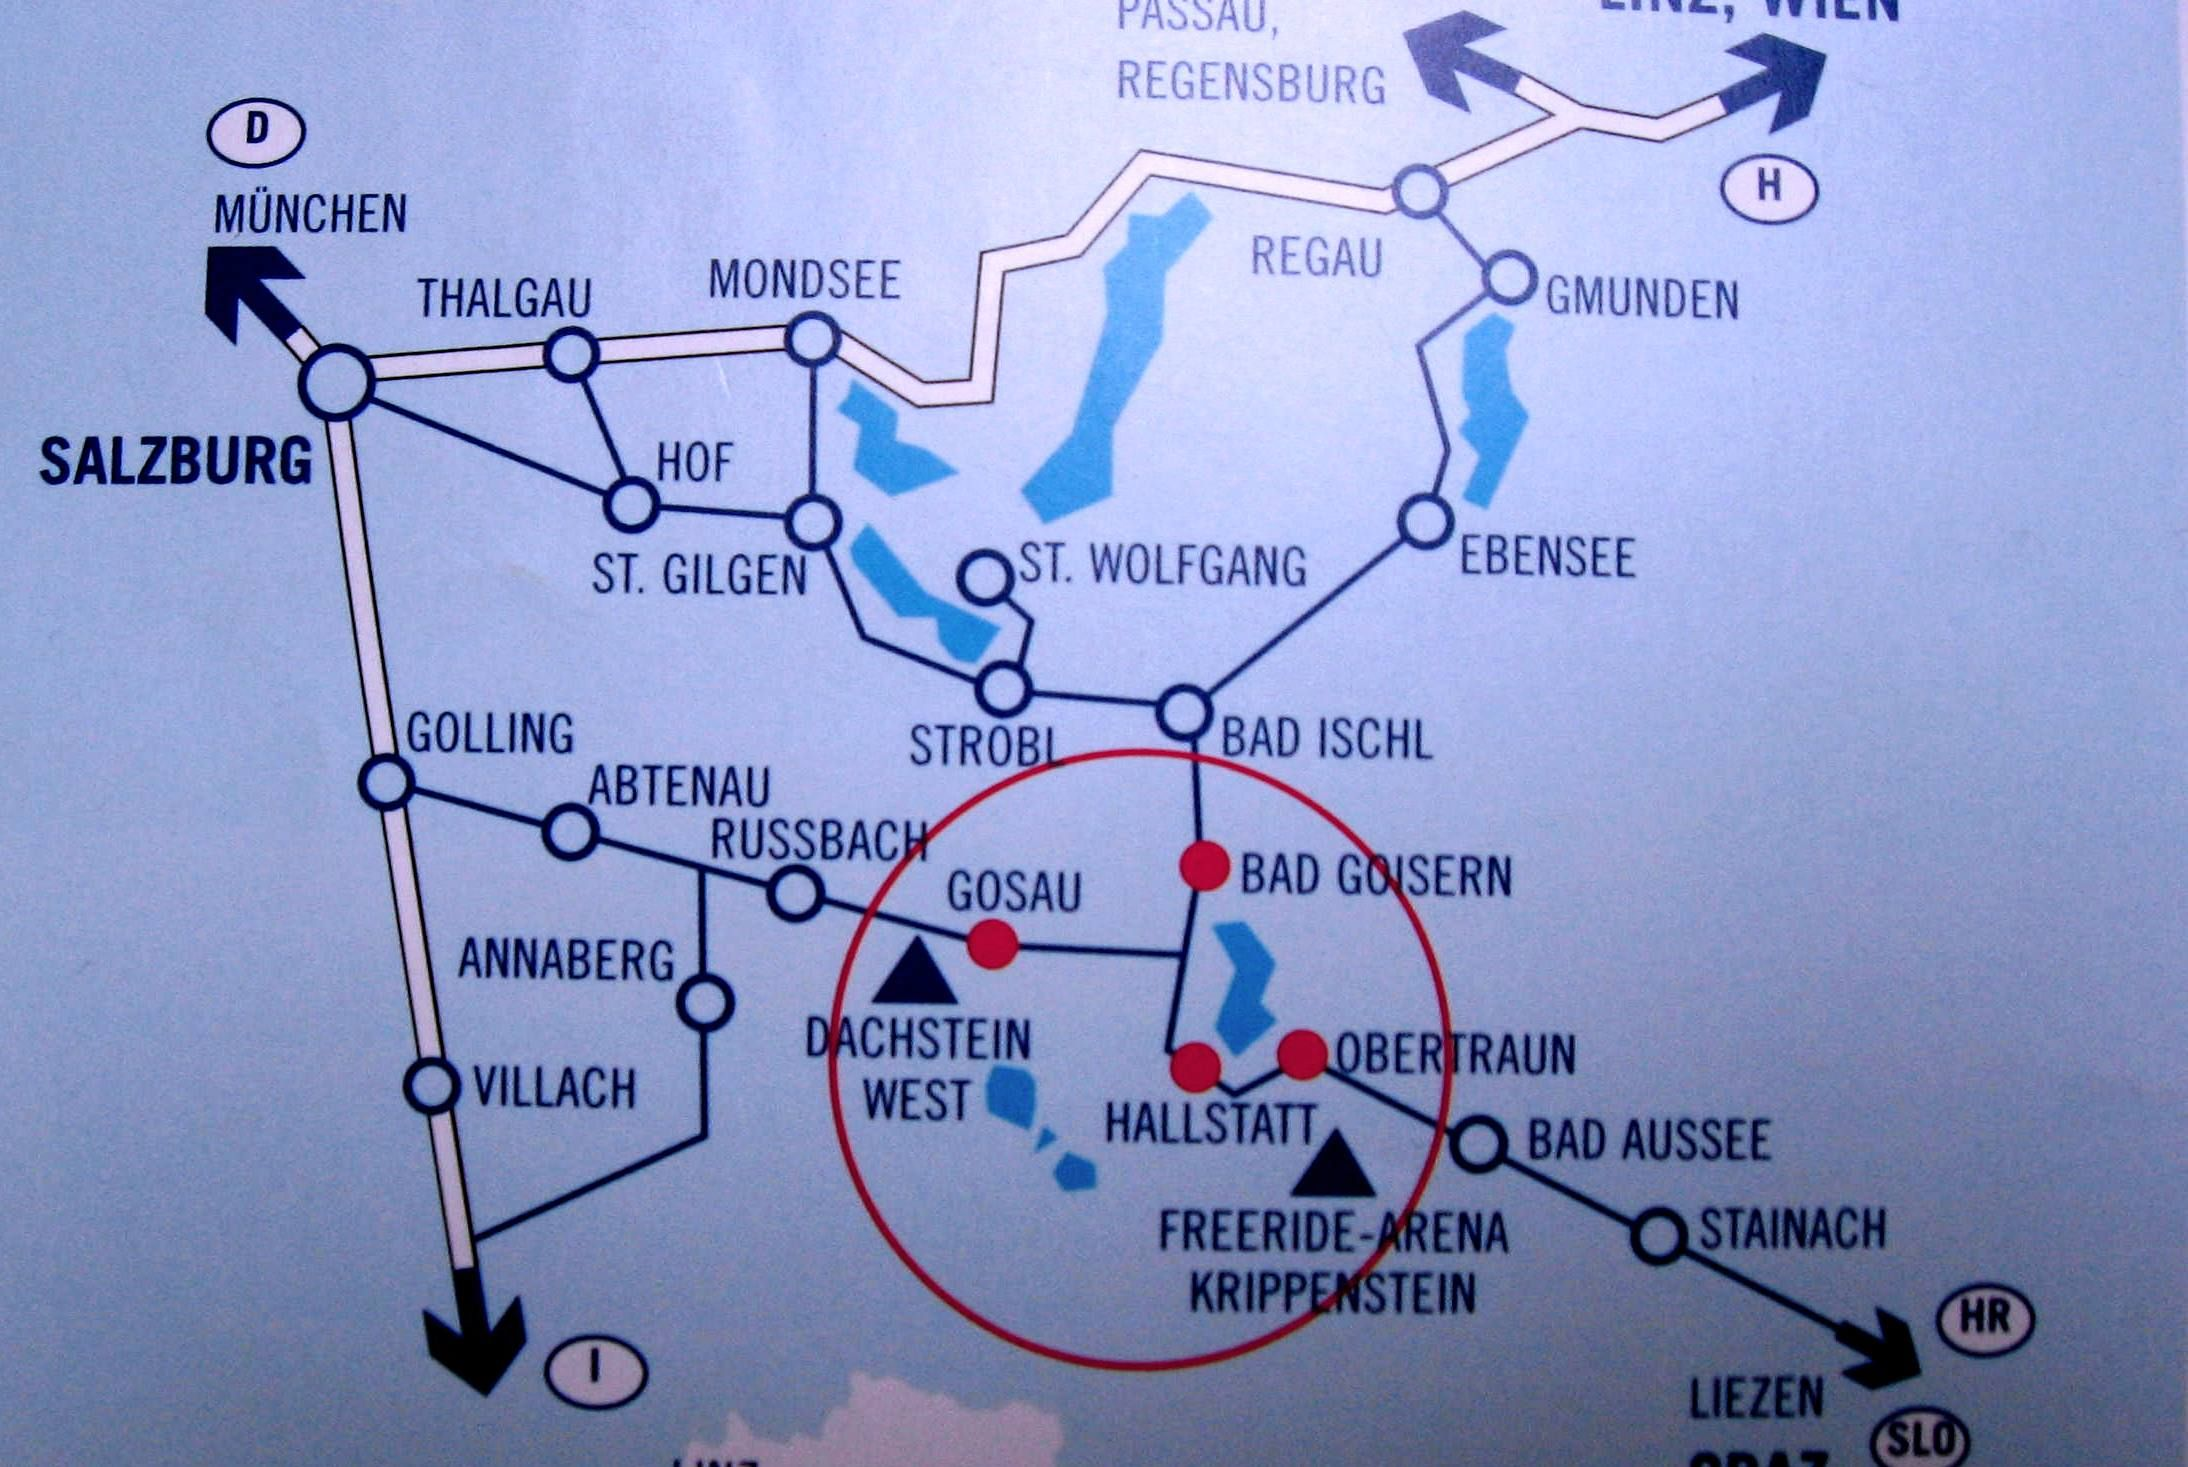 Where is Hallstatt located on map of